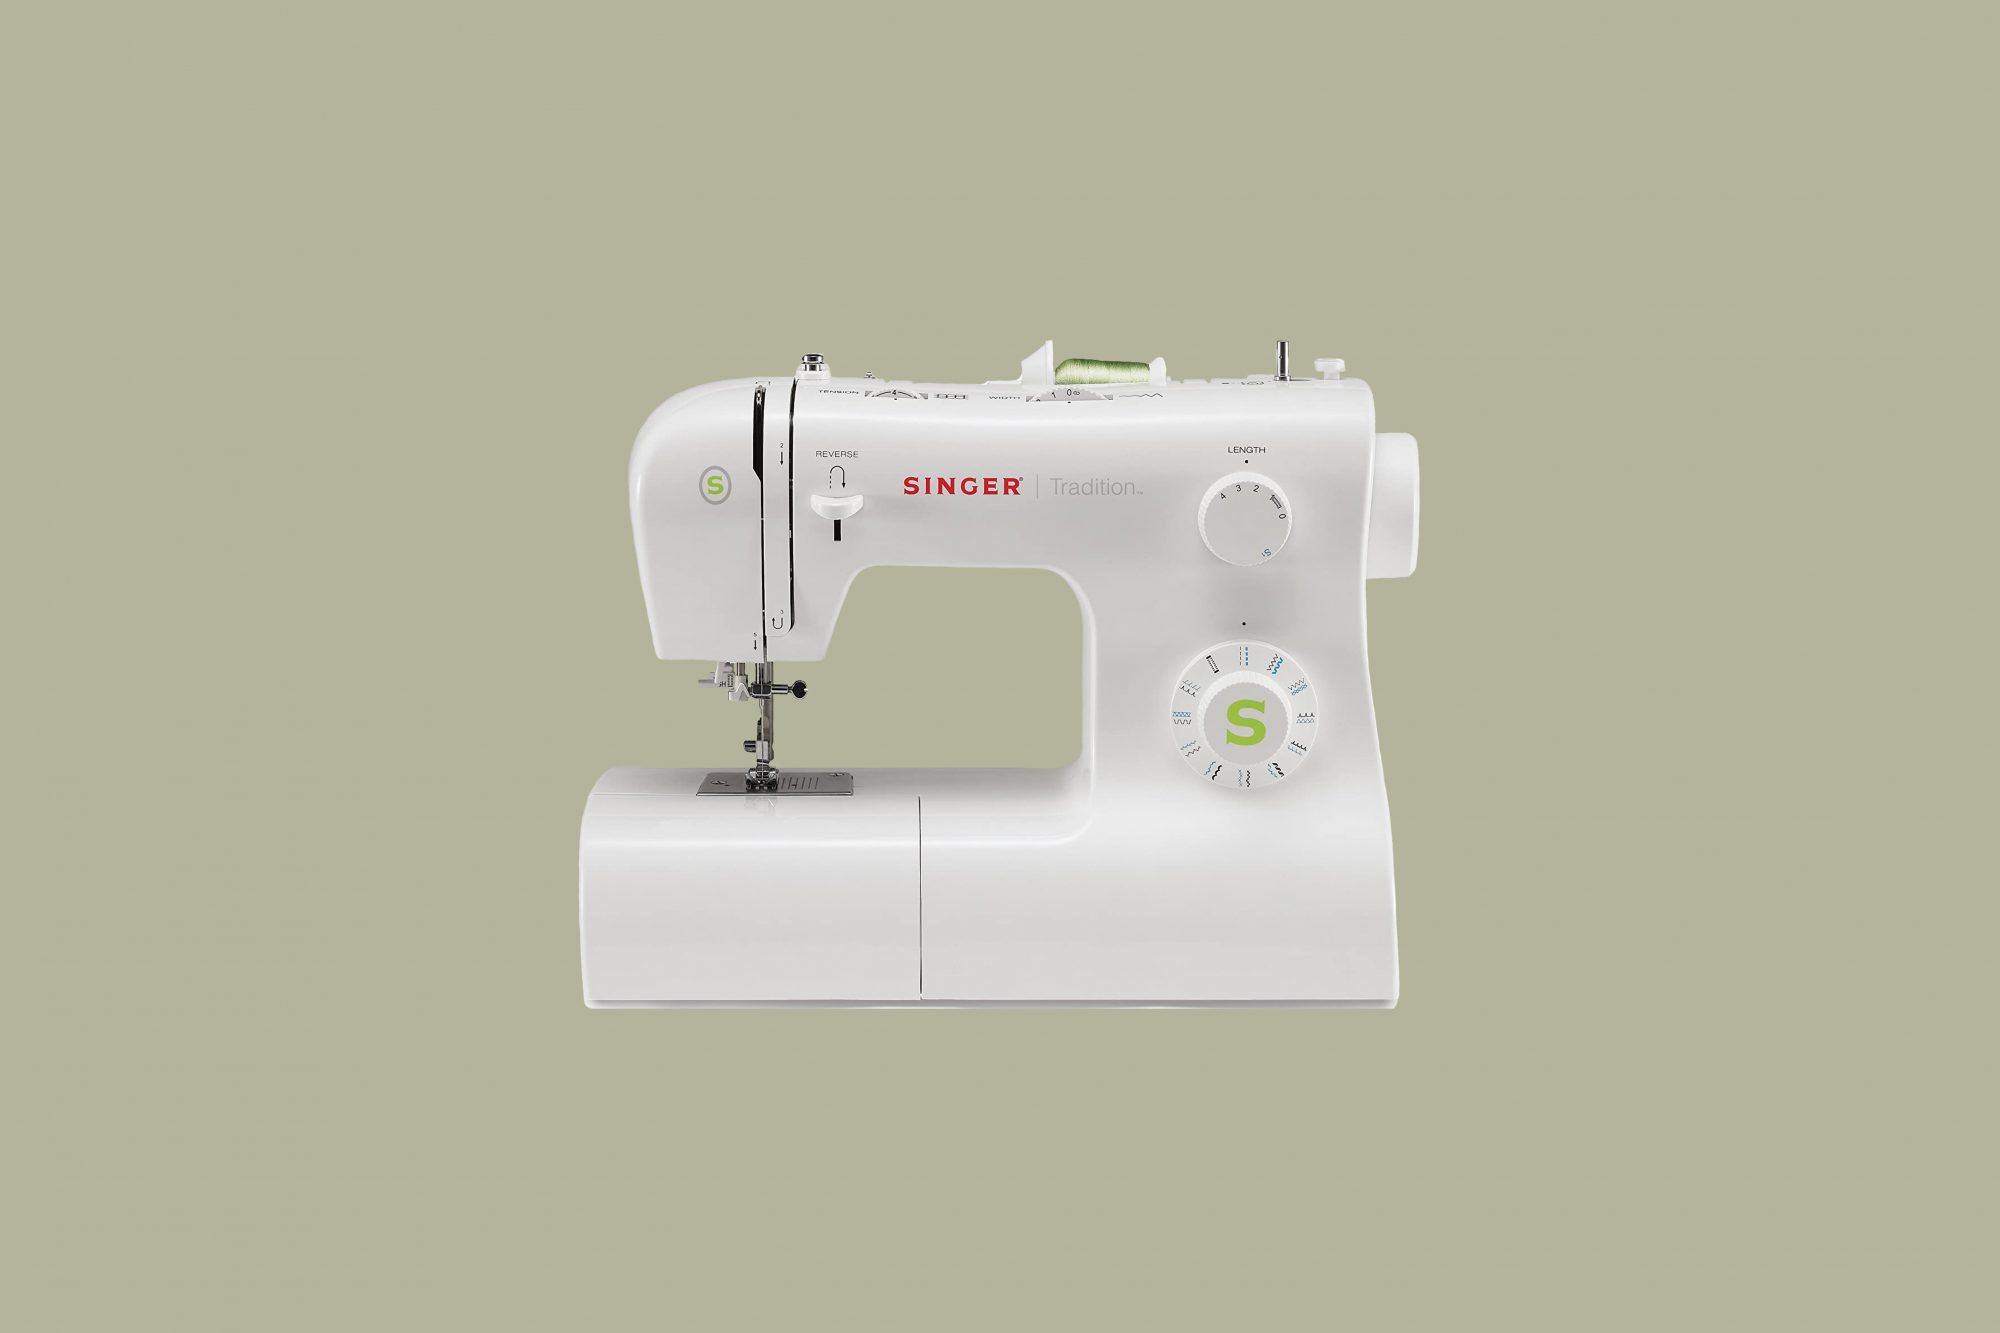 singer traditional essential sewing machine